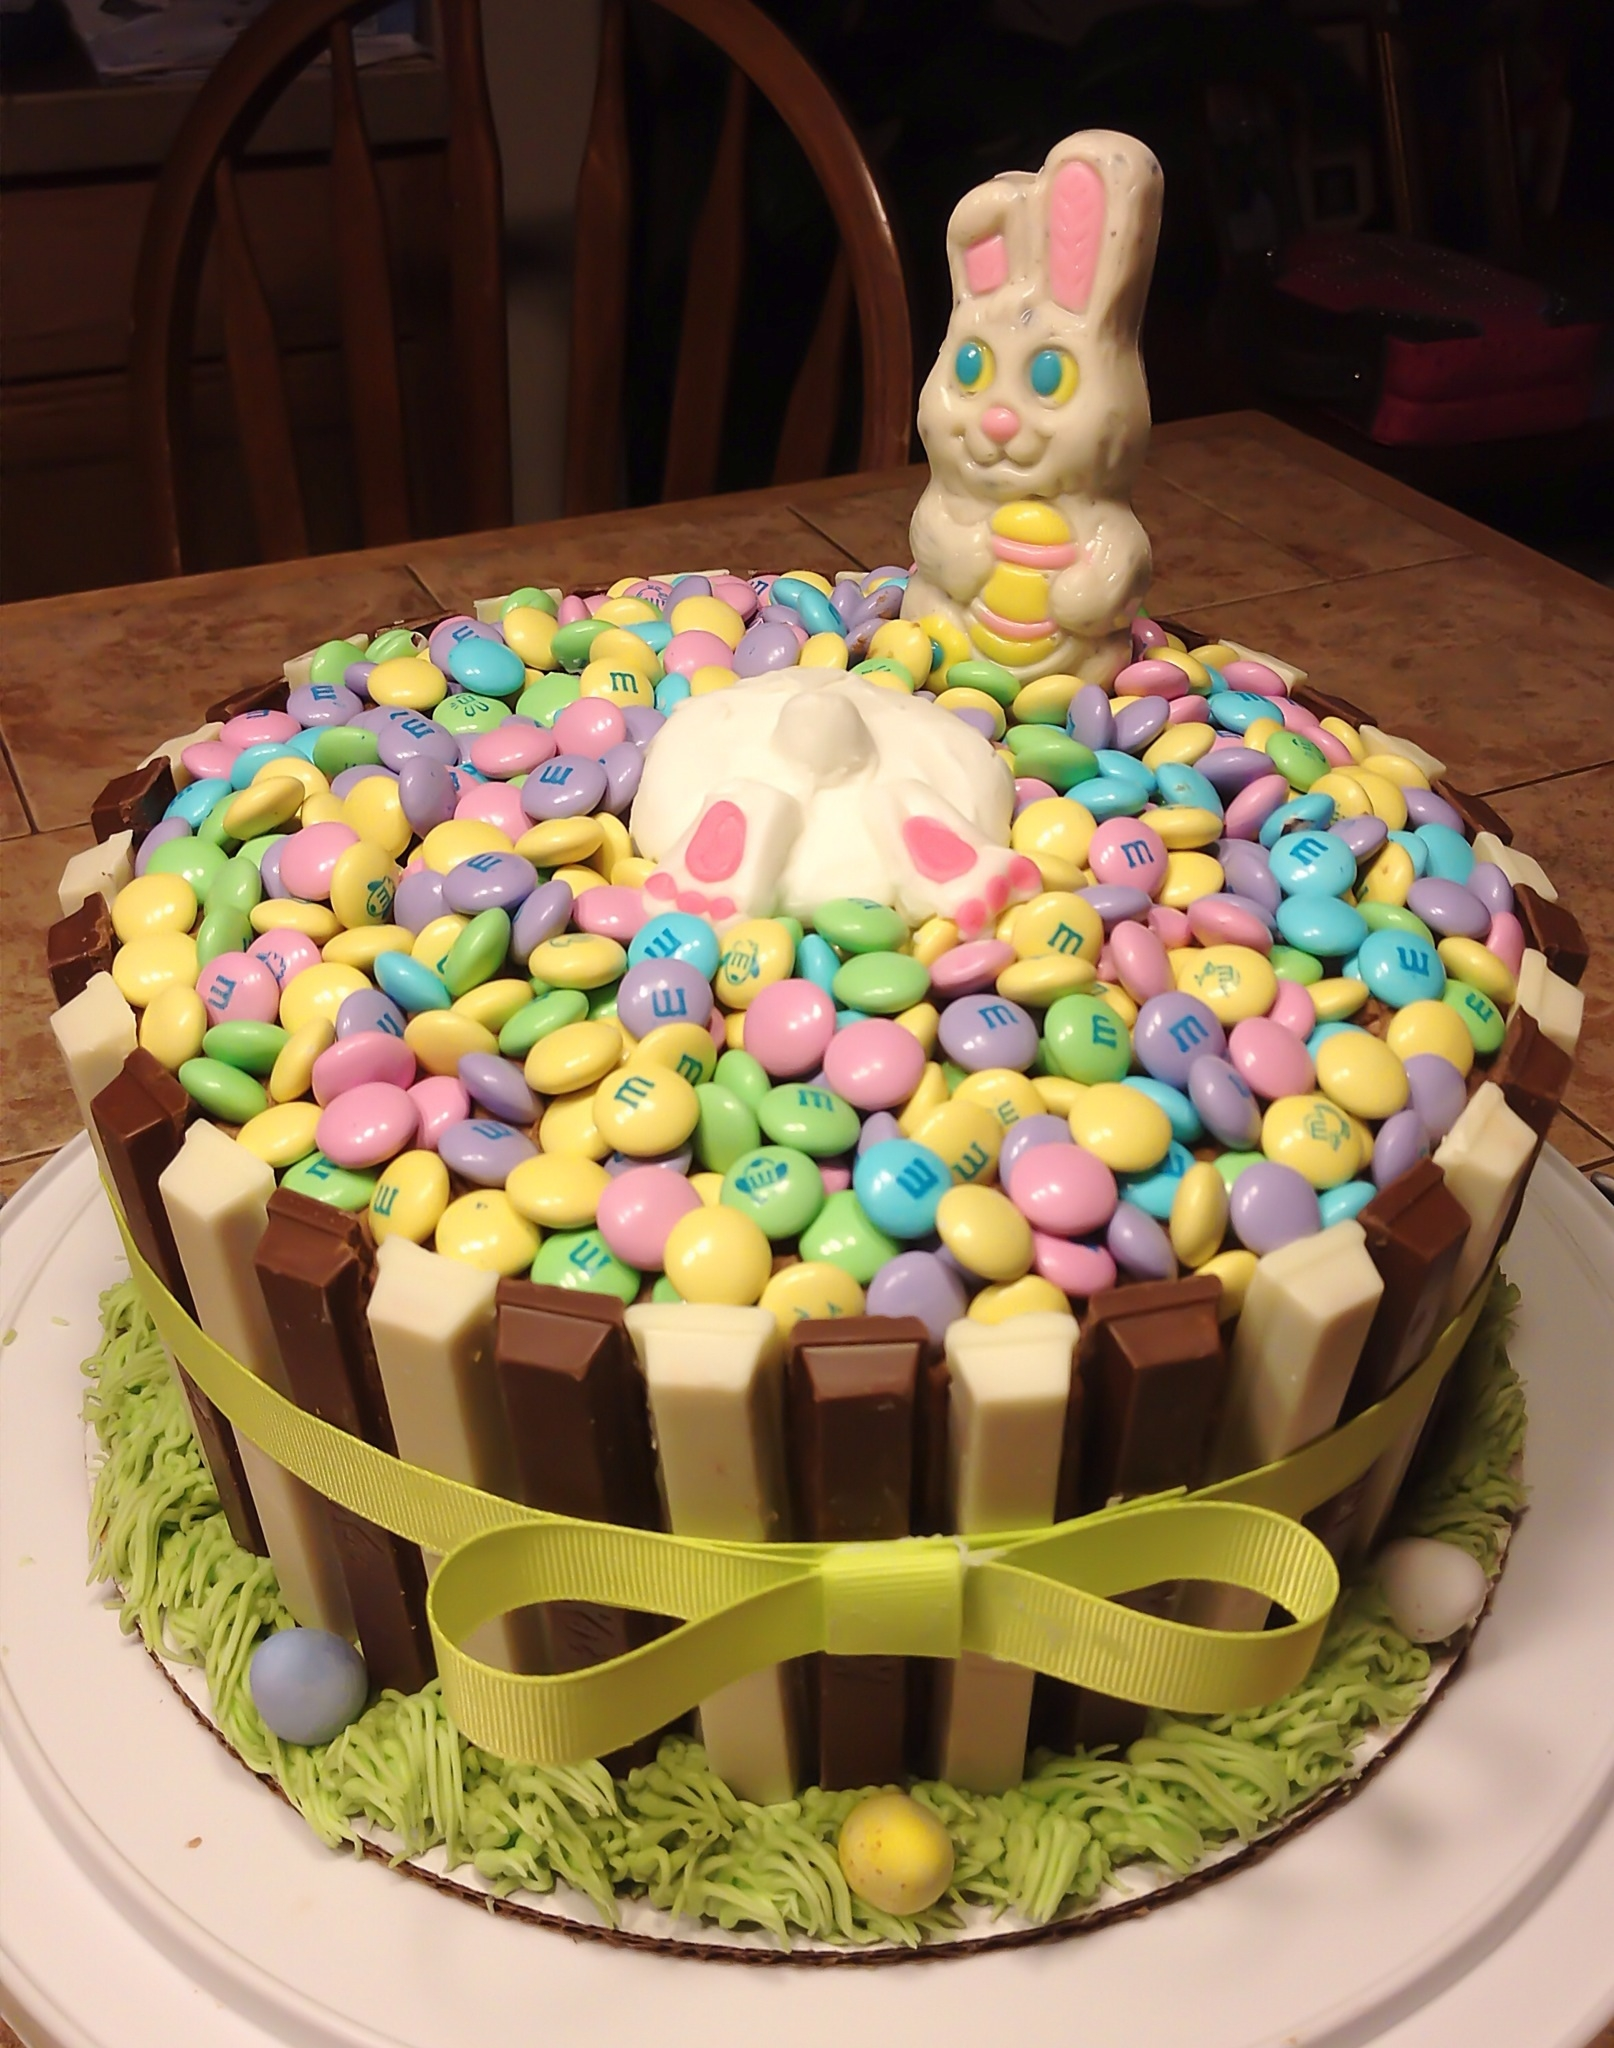 Cookies and cream easter basket cake with alternating chocolate cookies and cream easter basket cake with alternating chocolate white chocolate kitkat bars around the sides and flooded with mms on the top negle Gallery